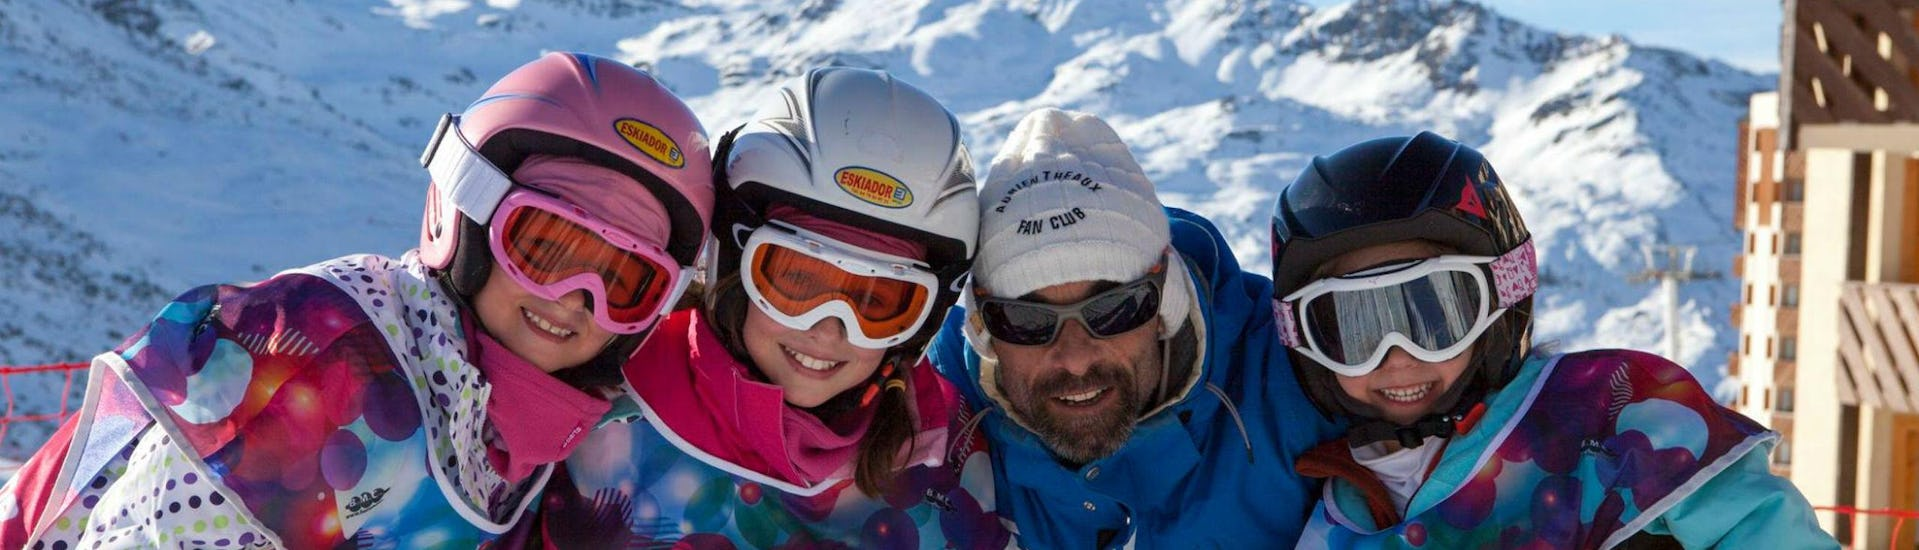 A group of children in full skiing gear are smiling at the camera together with their ski instructor from the ski school Prosneige Val Thorens & Les Menuires while preparing for their Kids Ski Lessons (5-13 years) - Equipment incl. - All Levels.